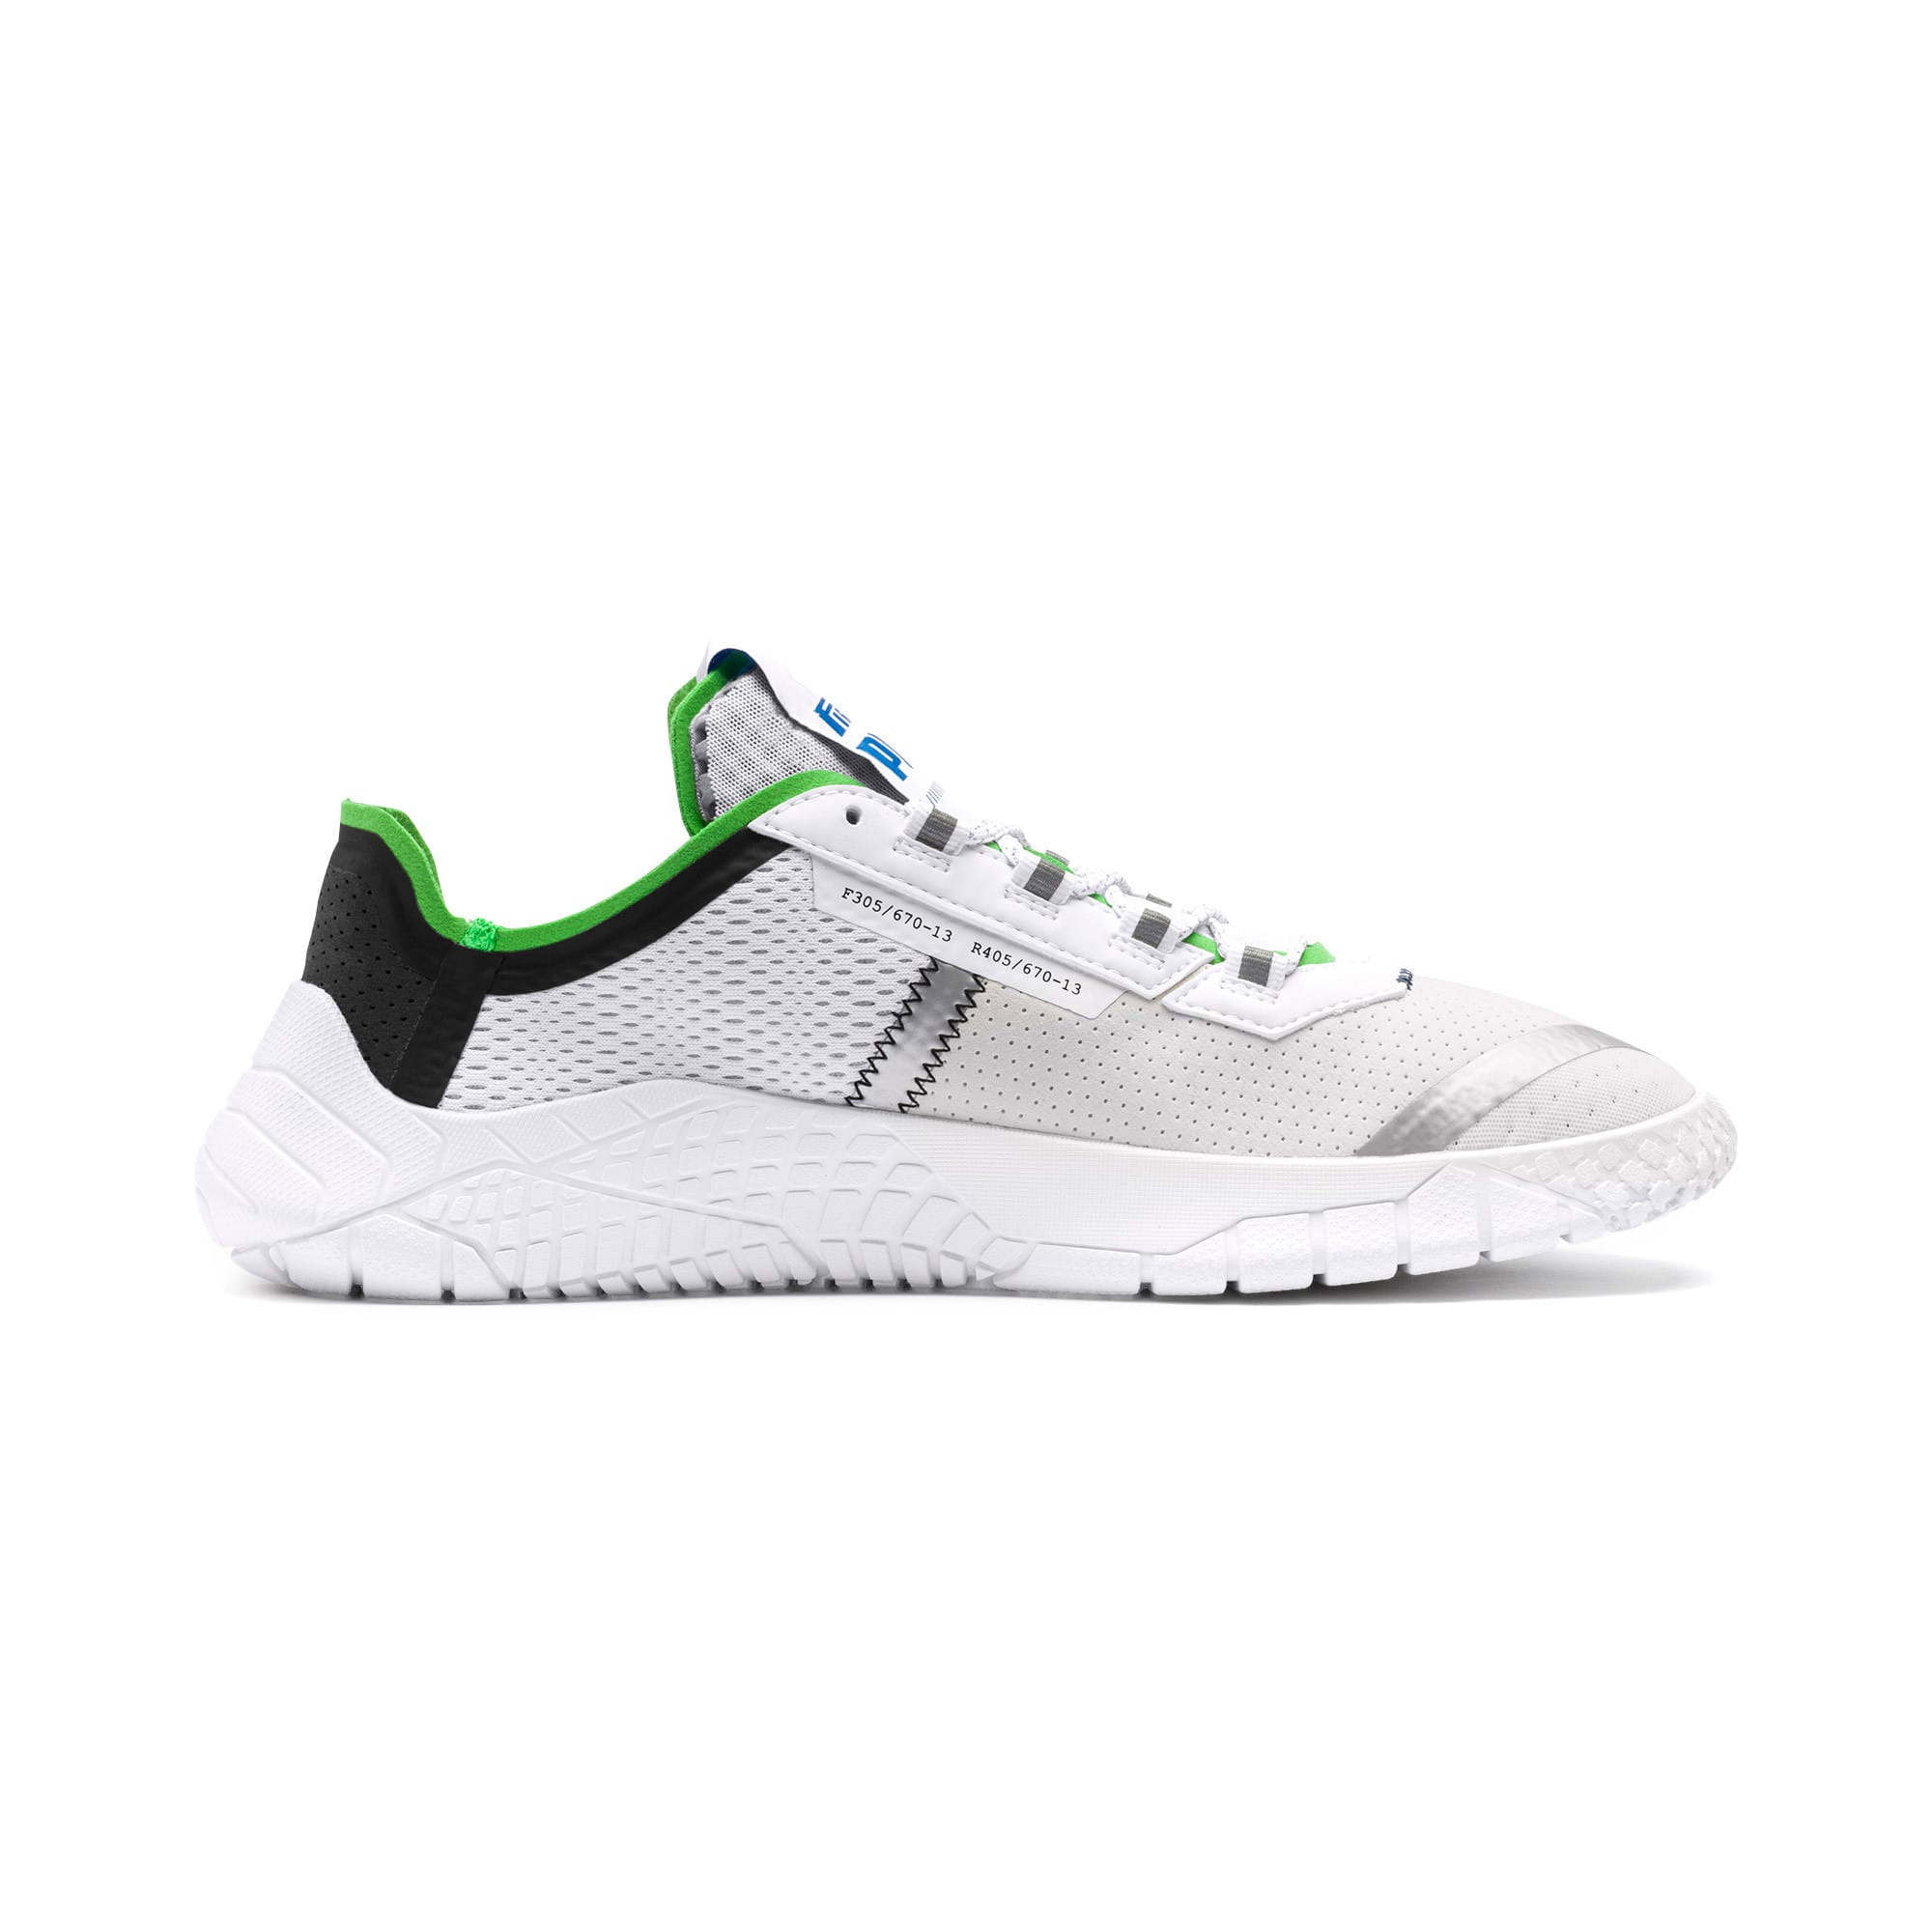 Thumbnail 6 of Replicat-X Pirelli Motorsport Shoes, White-Black-Classic Green, medium